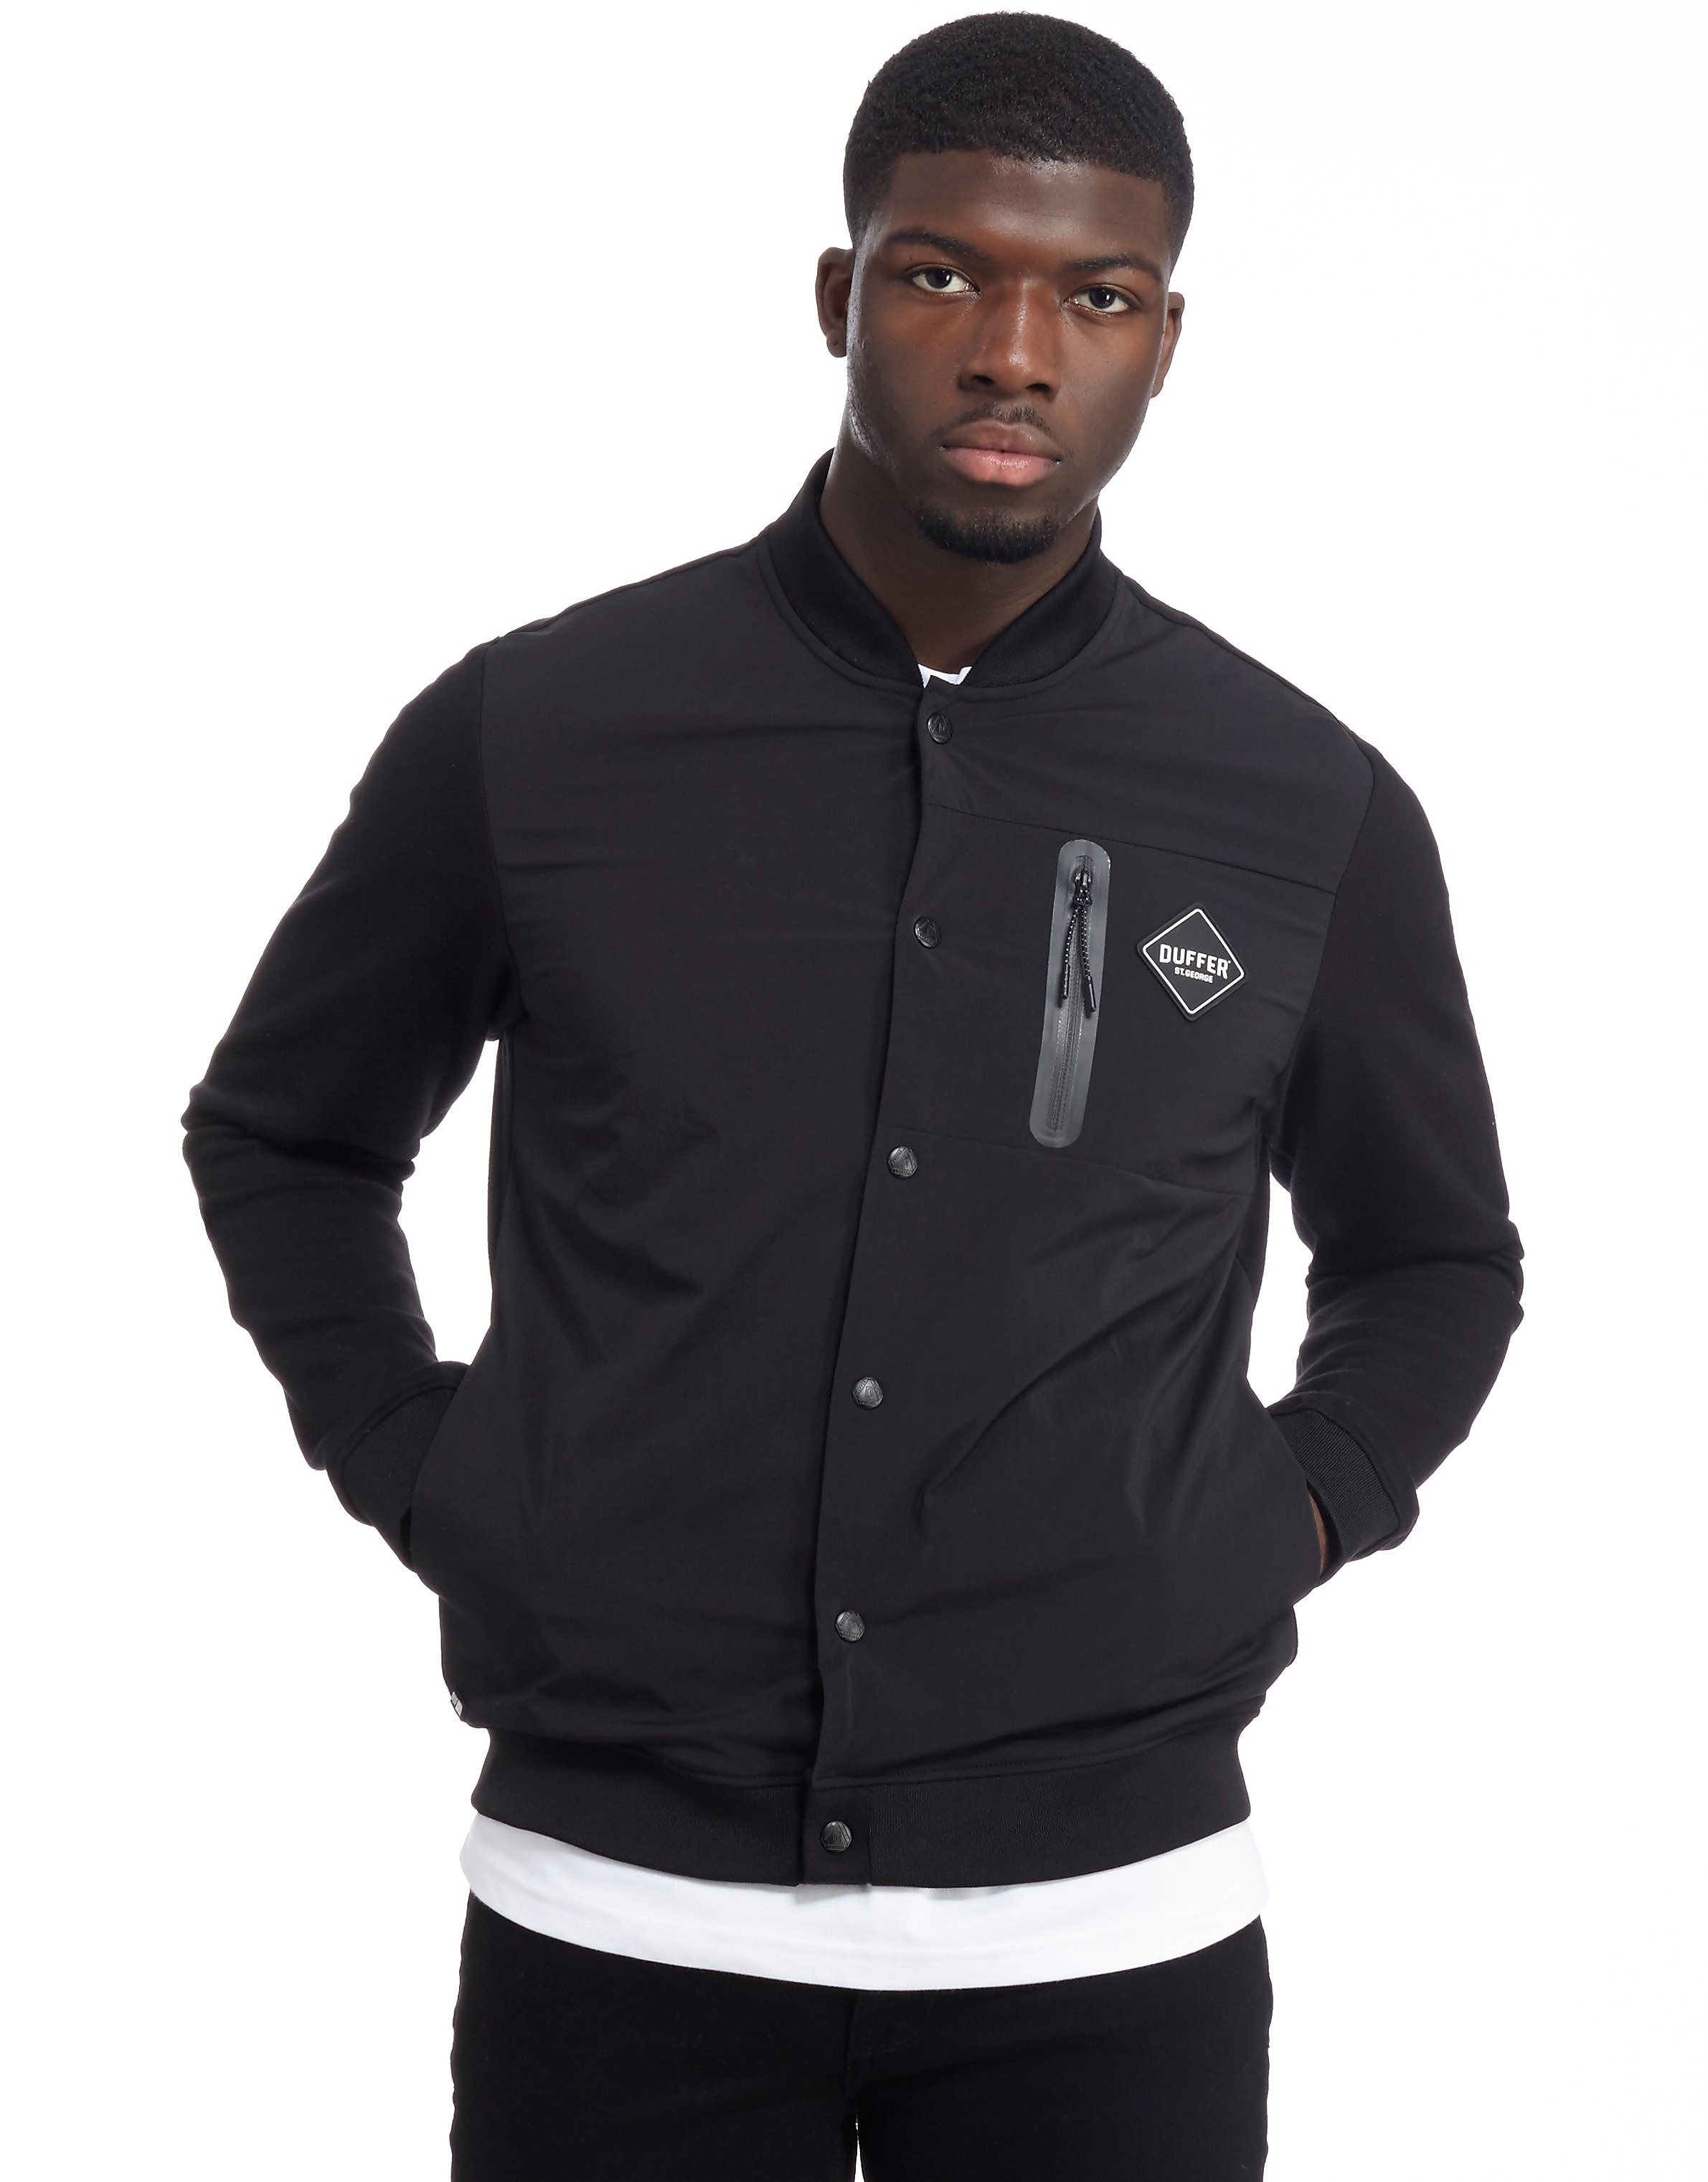 Duffer of St George Black Label Monde Jacket